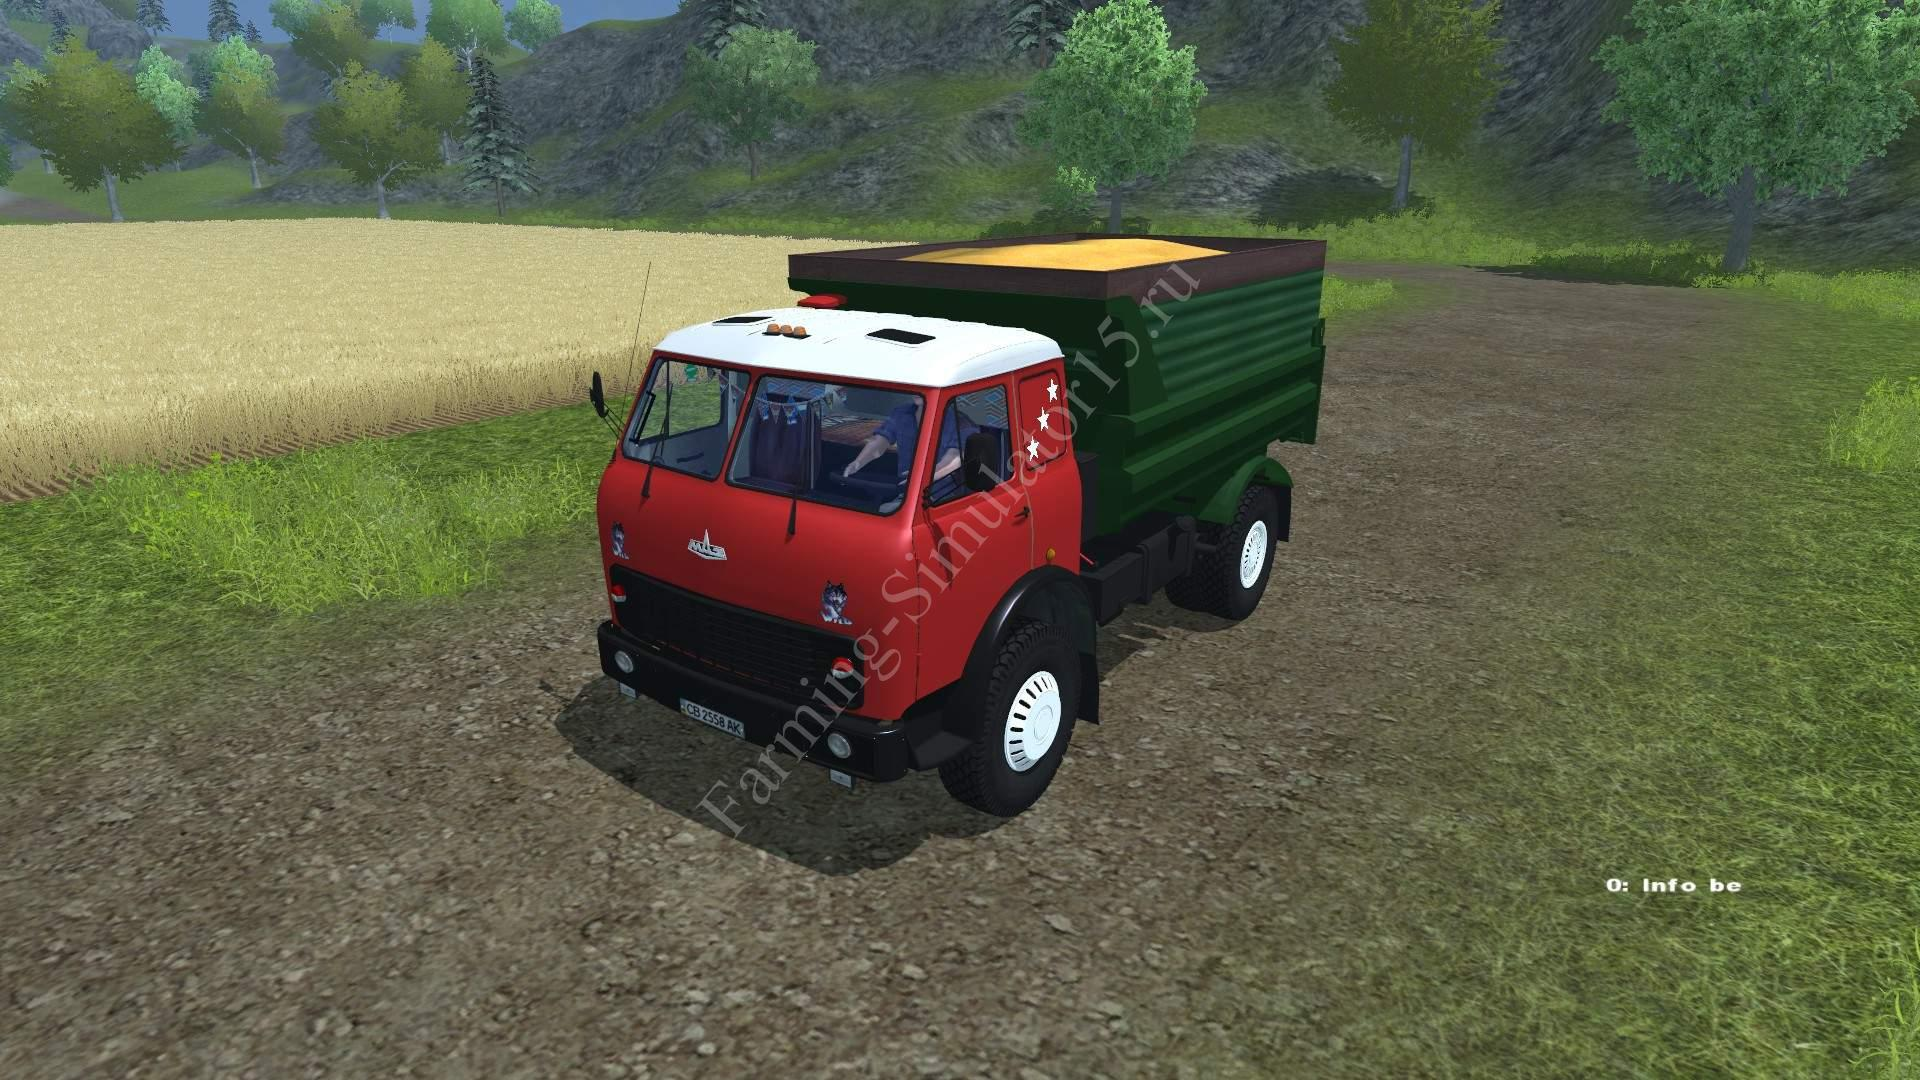 Мод грузовика МАЗ MAZ 500 v 1.0 Farming Simulator 2013, Farming Simulator 13